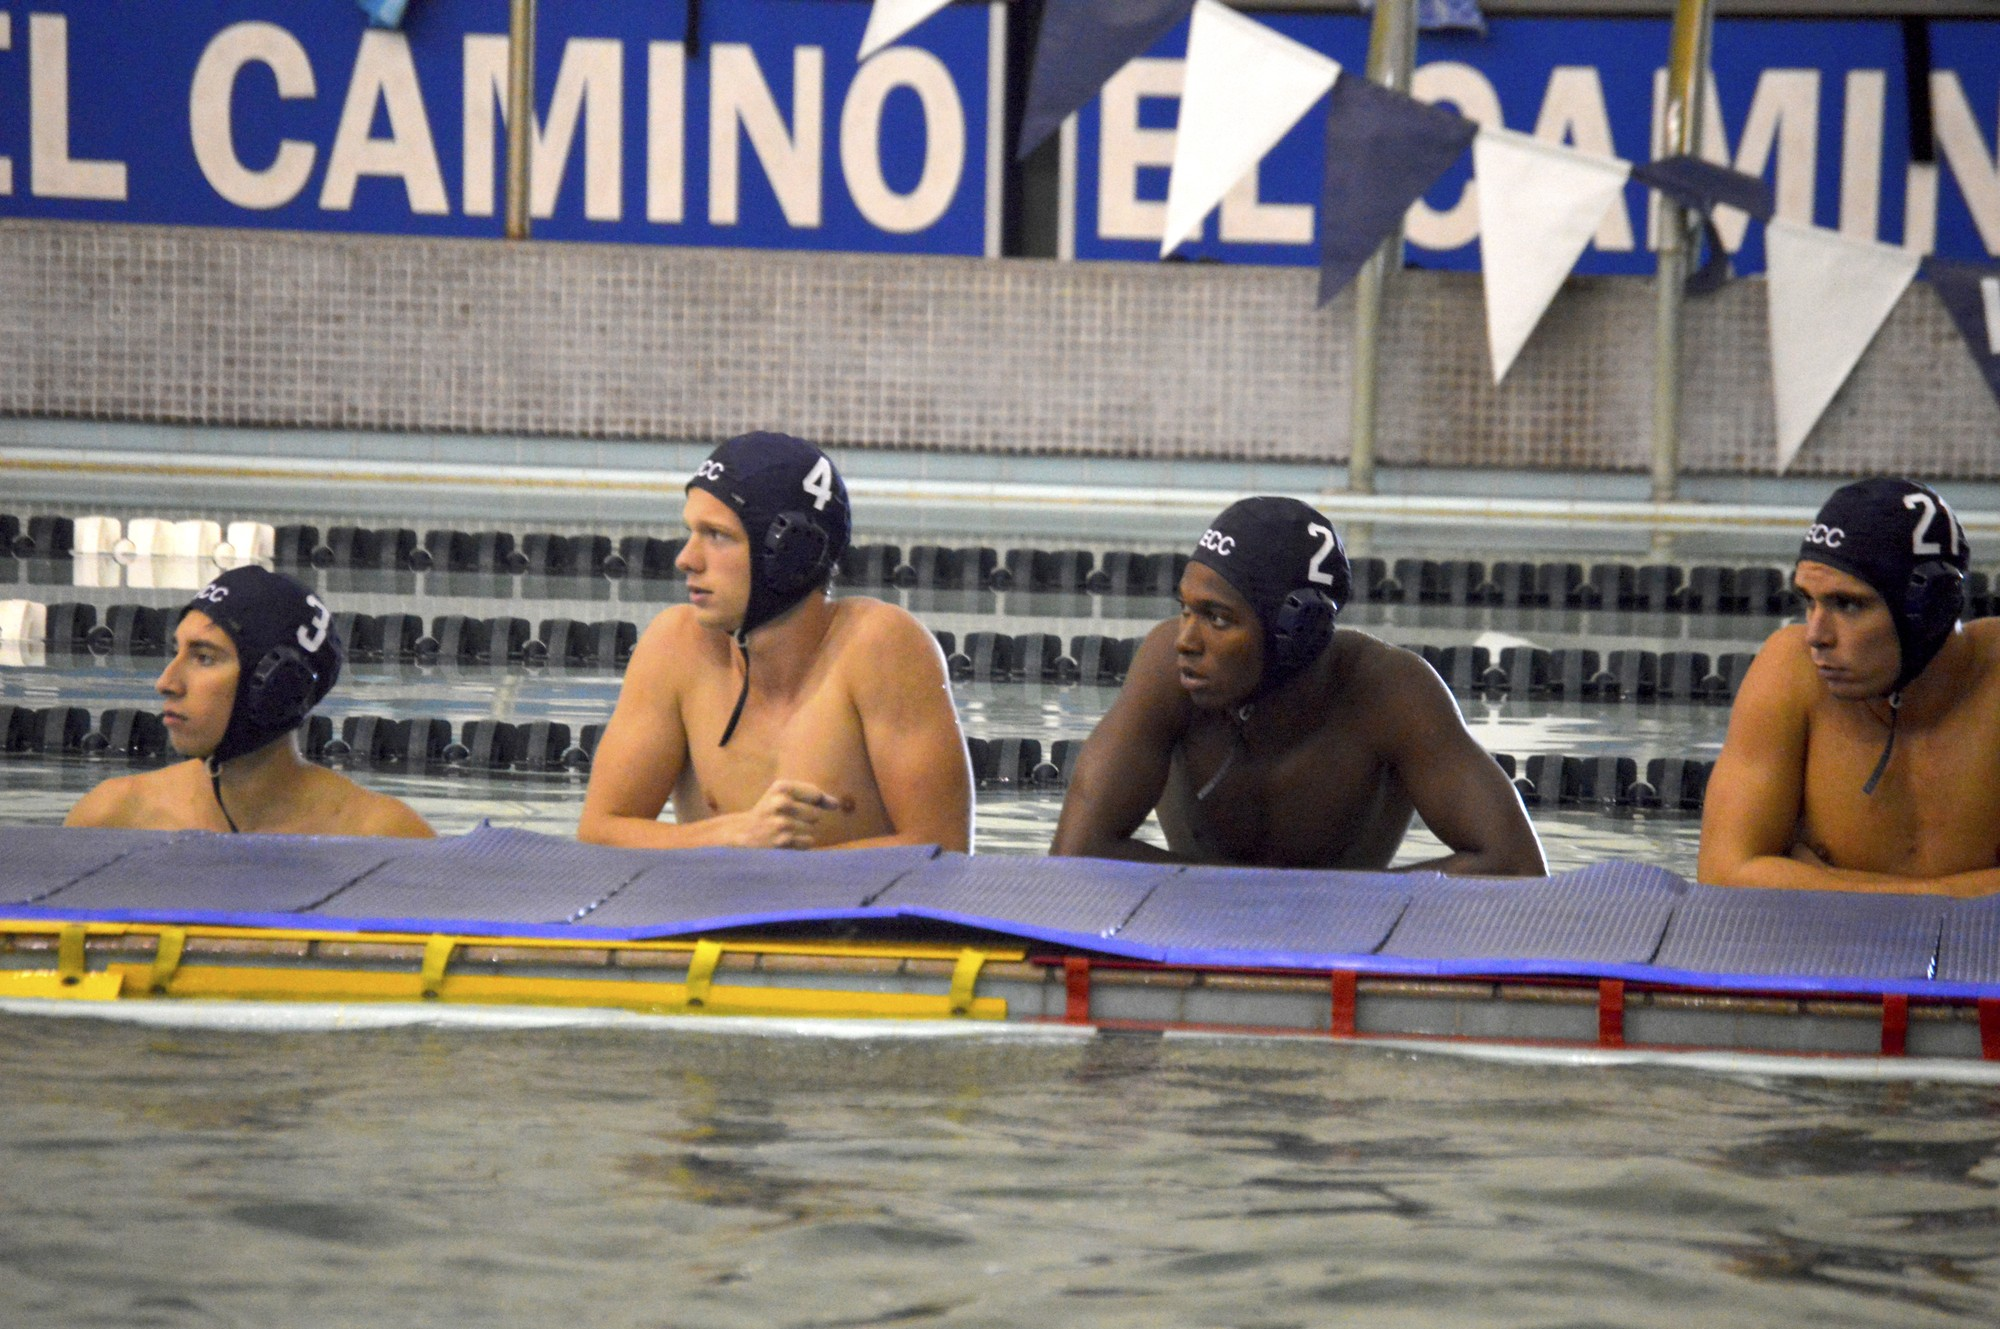 Up next for men's water polo: Wednesday vs. Long Beach City College